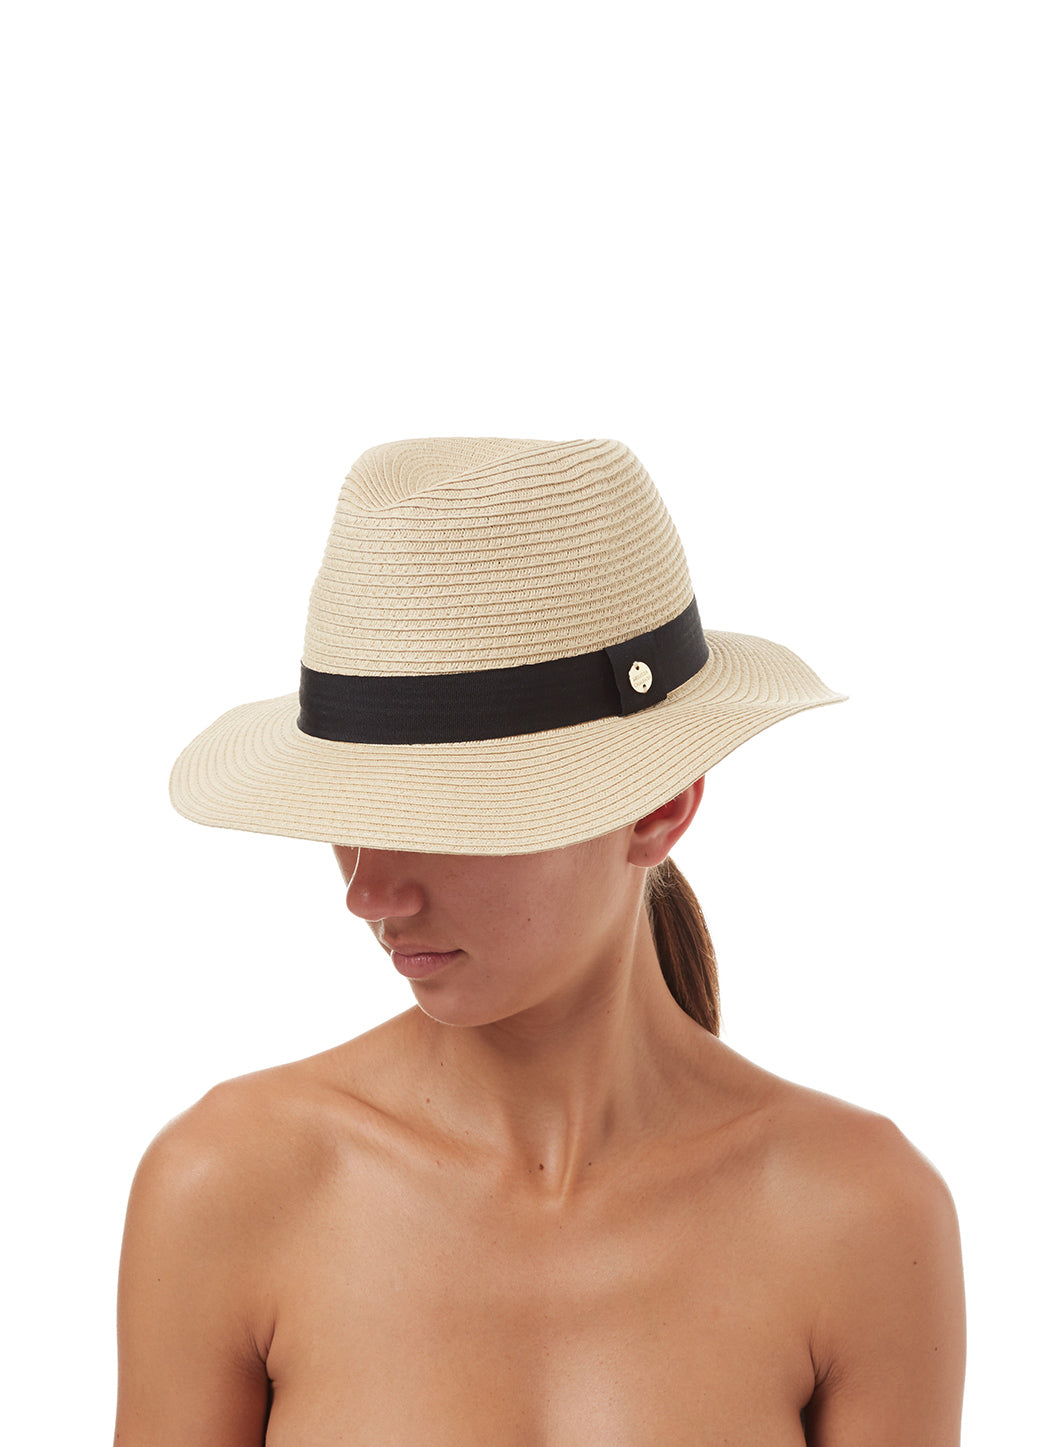 Fedora Hat Beige Black - Melissa Odabash Accessories